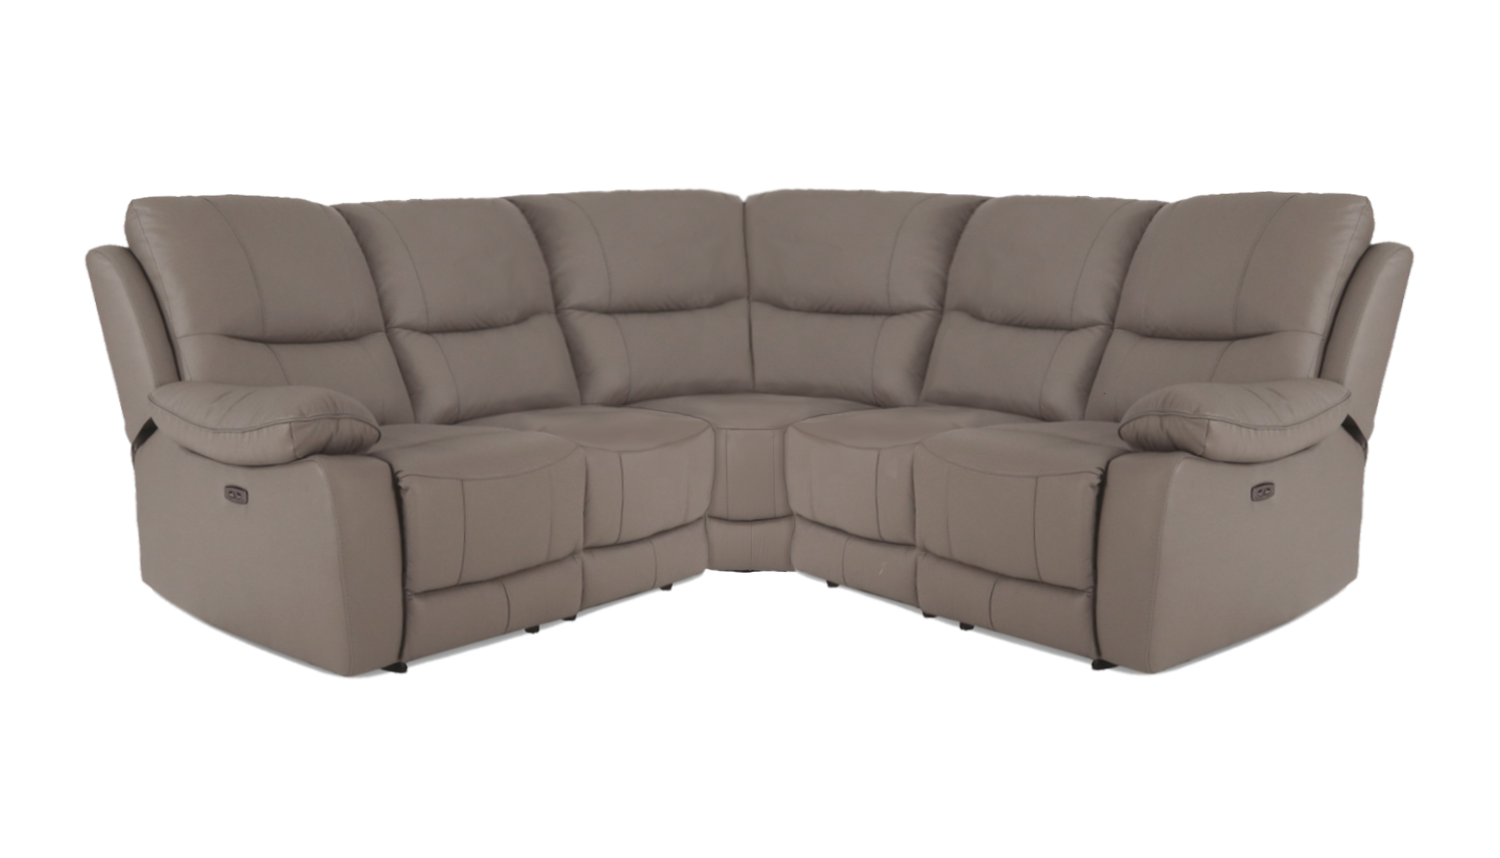 Tivoli 2 Corner 2 Manual Recliner Corner Group